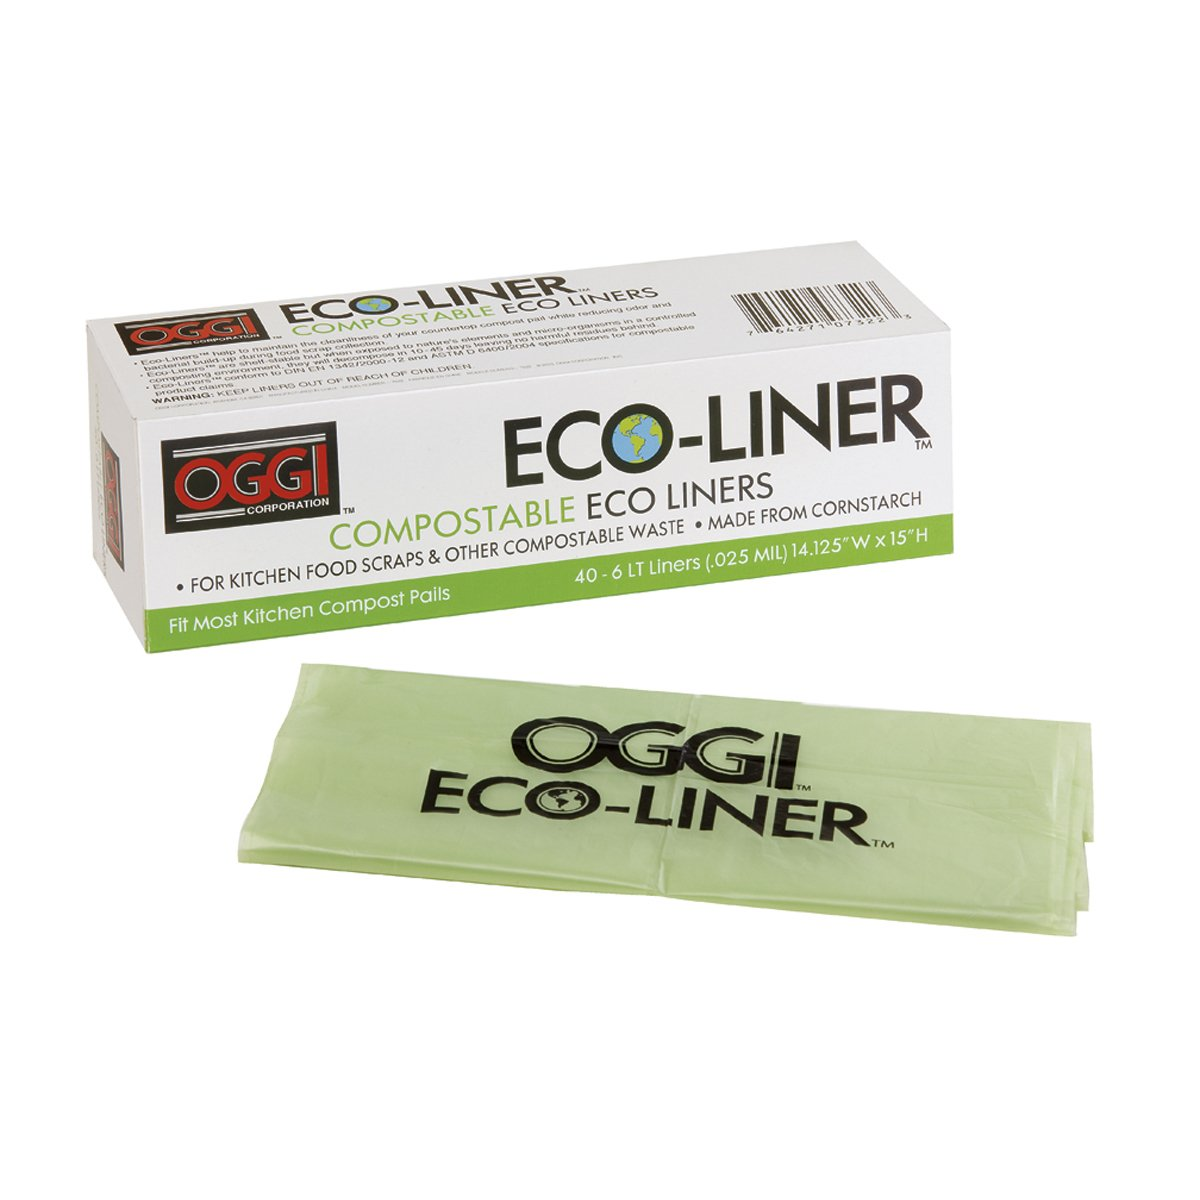 Oggi Eco-Liner Compost Pail Liners